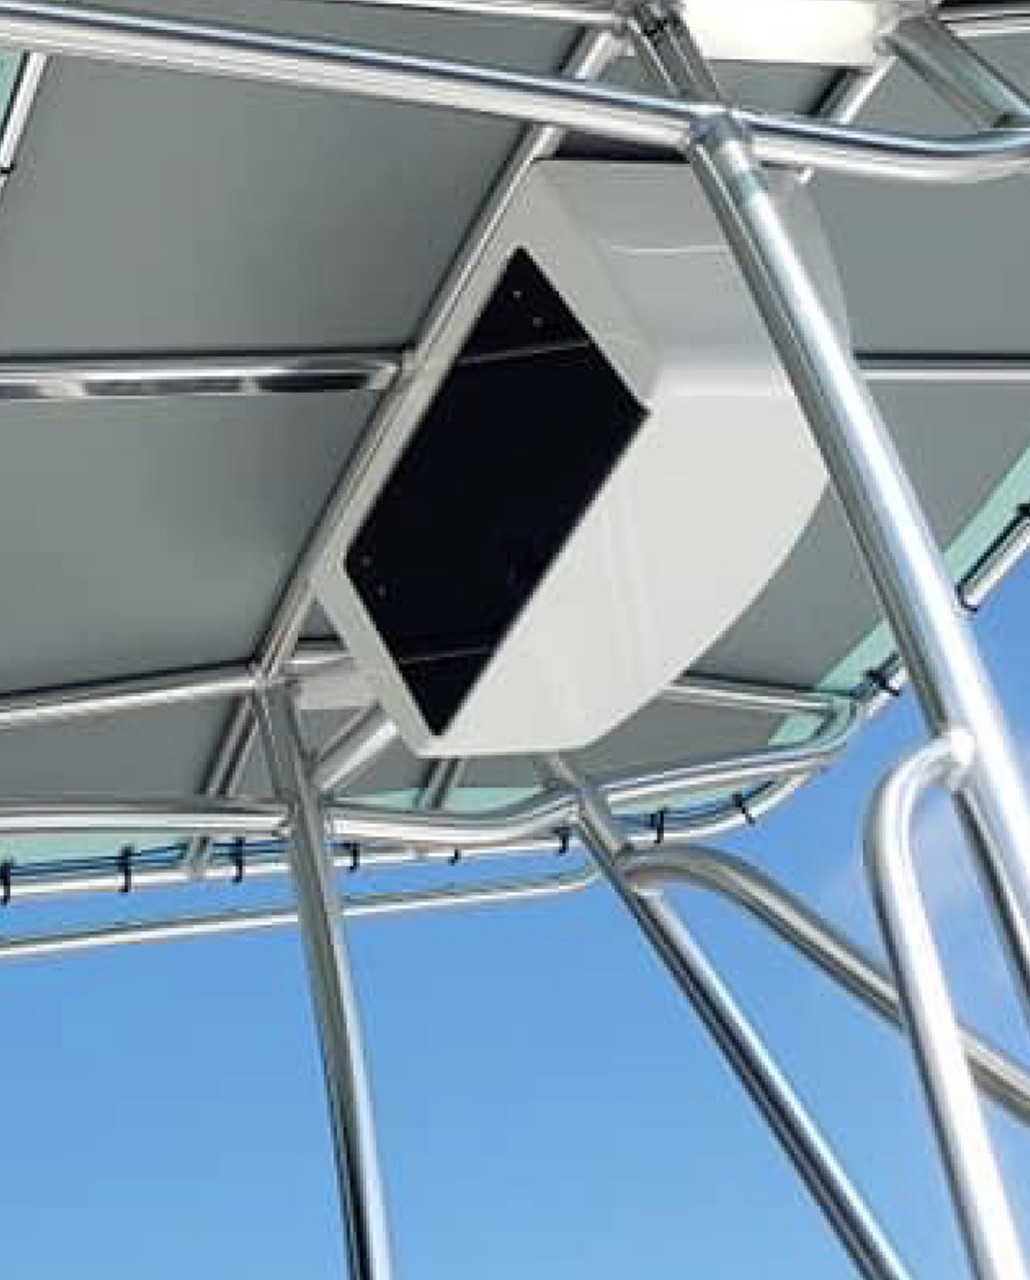 """Premium fiberglass marine grade products from Mangrove Marine are top of the line.   Check out our Electronics Boxes with all stainless hardware, push button lock and available in 24"""" and 29.5"""" widths"""